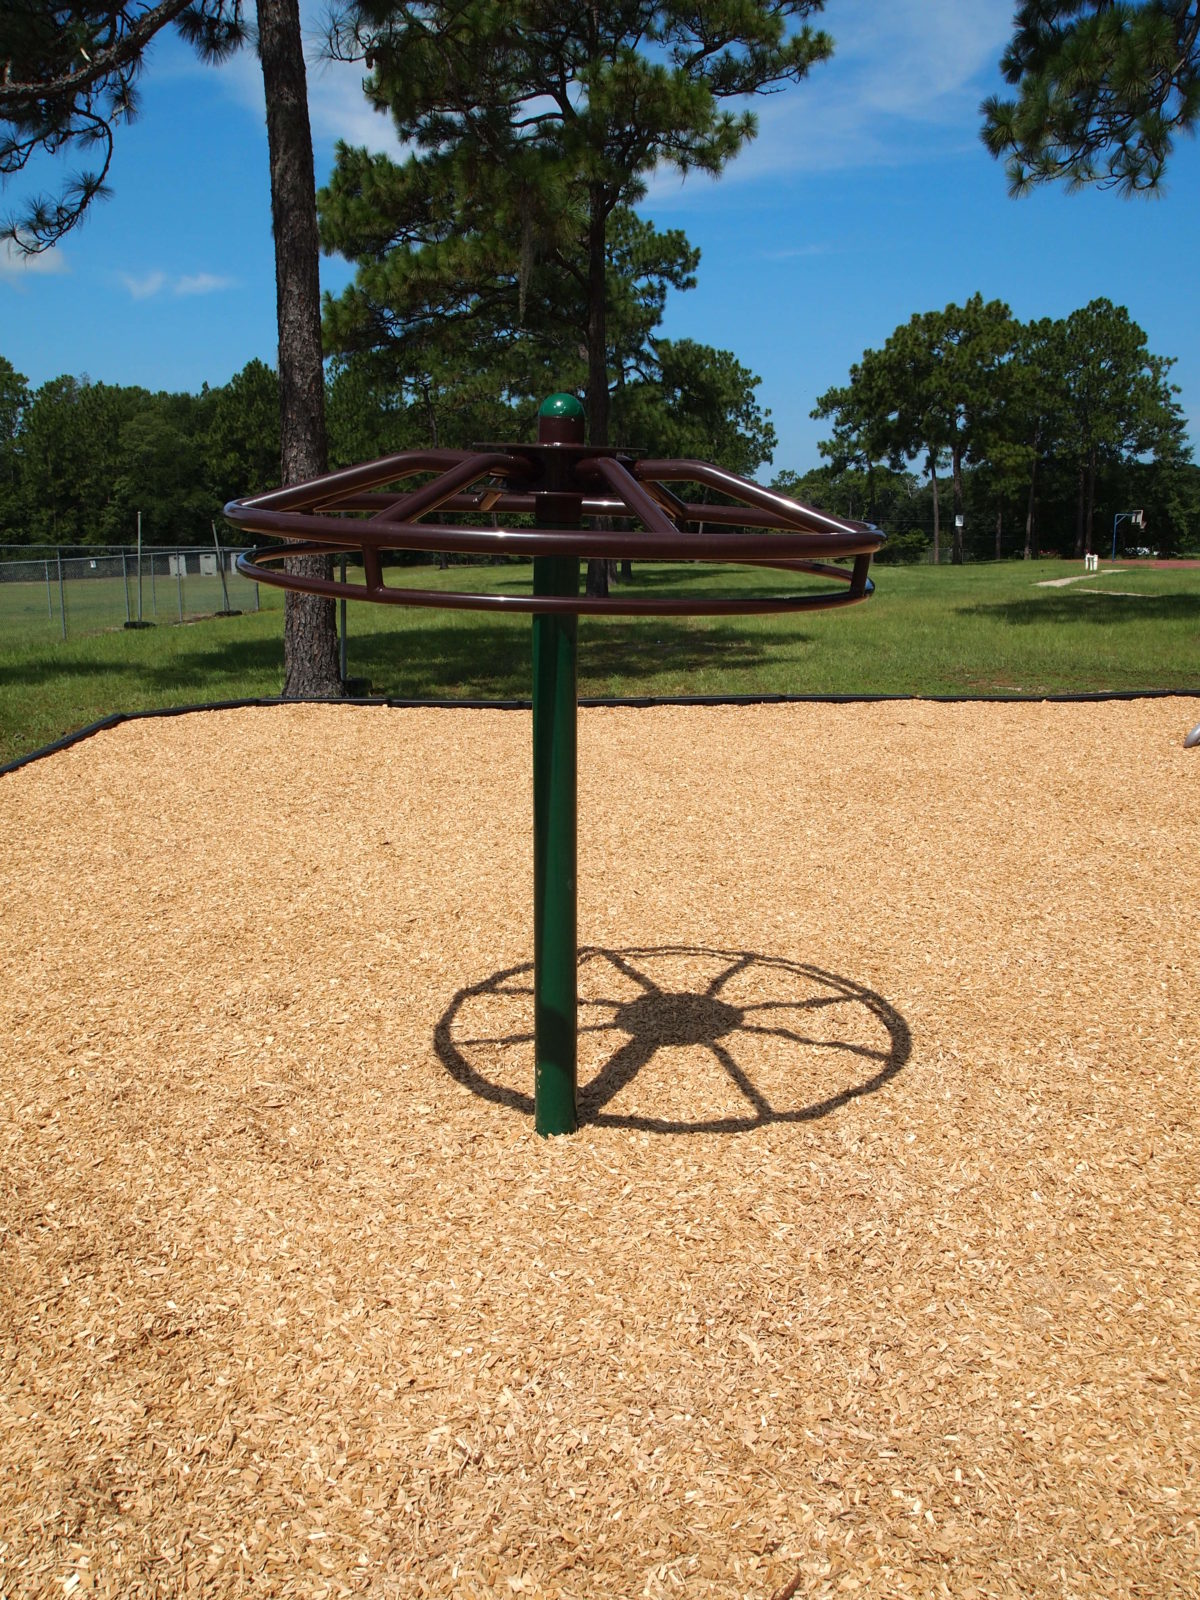 Florida Elementary School Commercial Playground Equipment 13